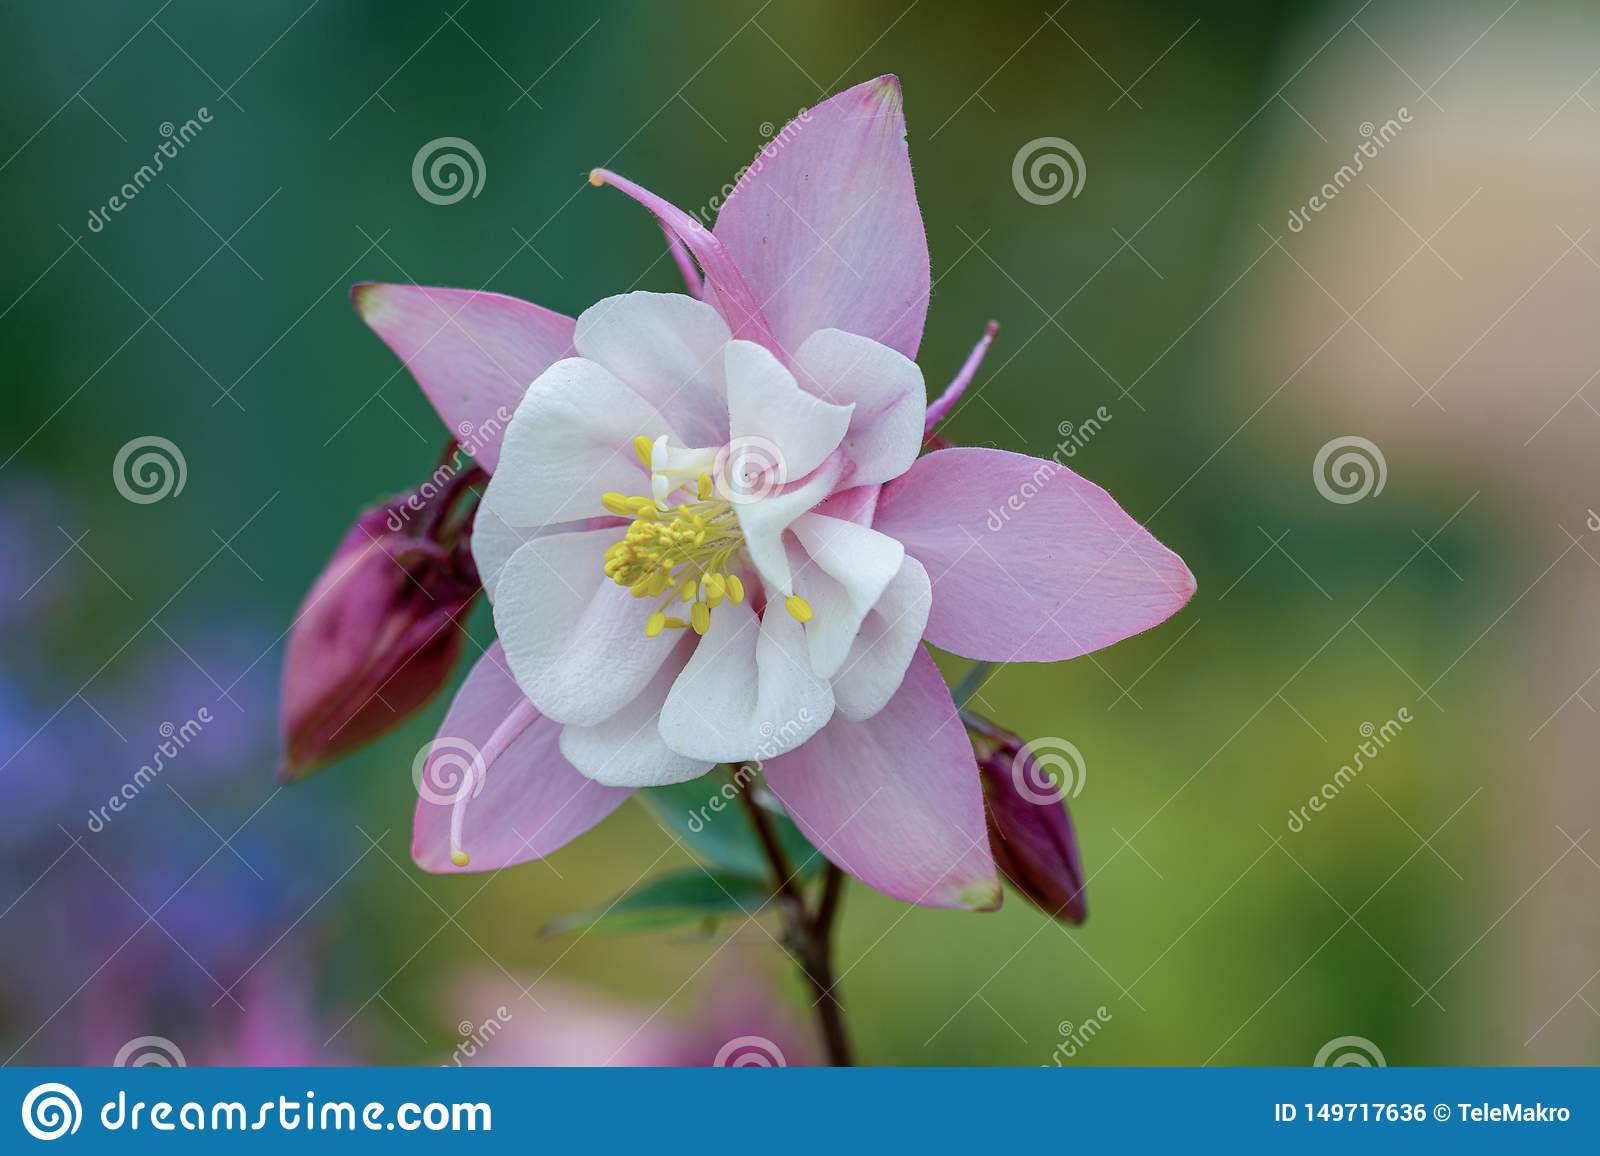 Macro of a pink columbine flower